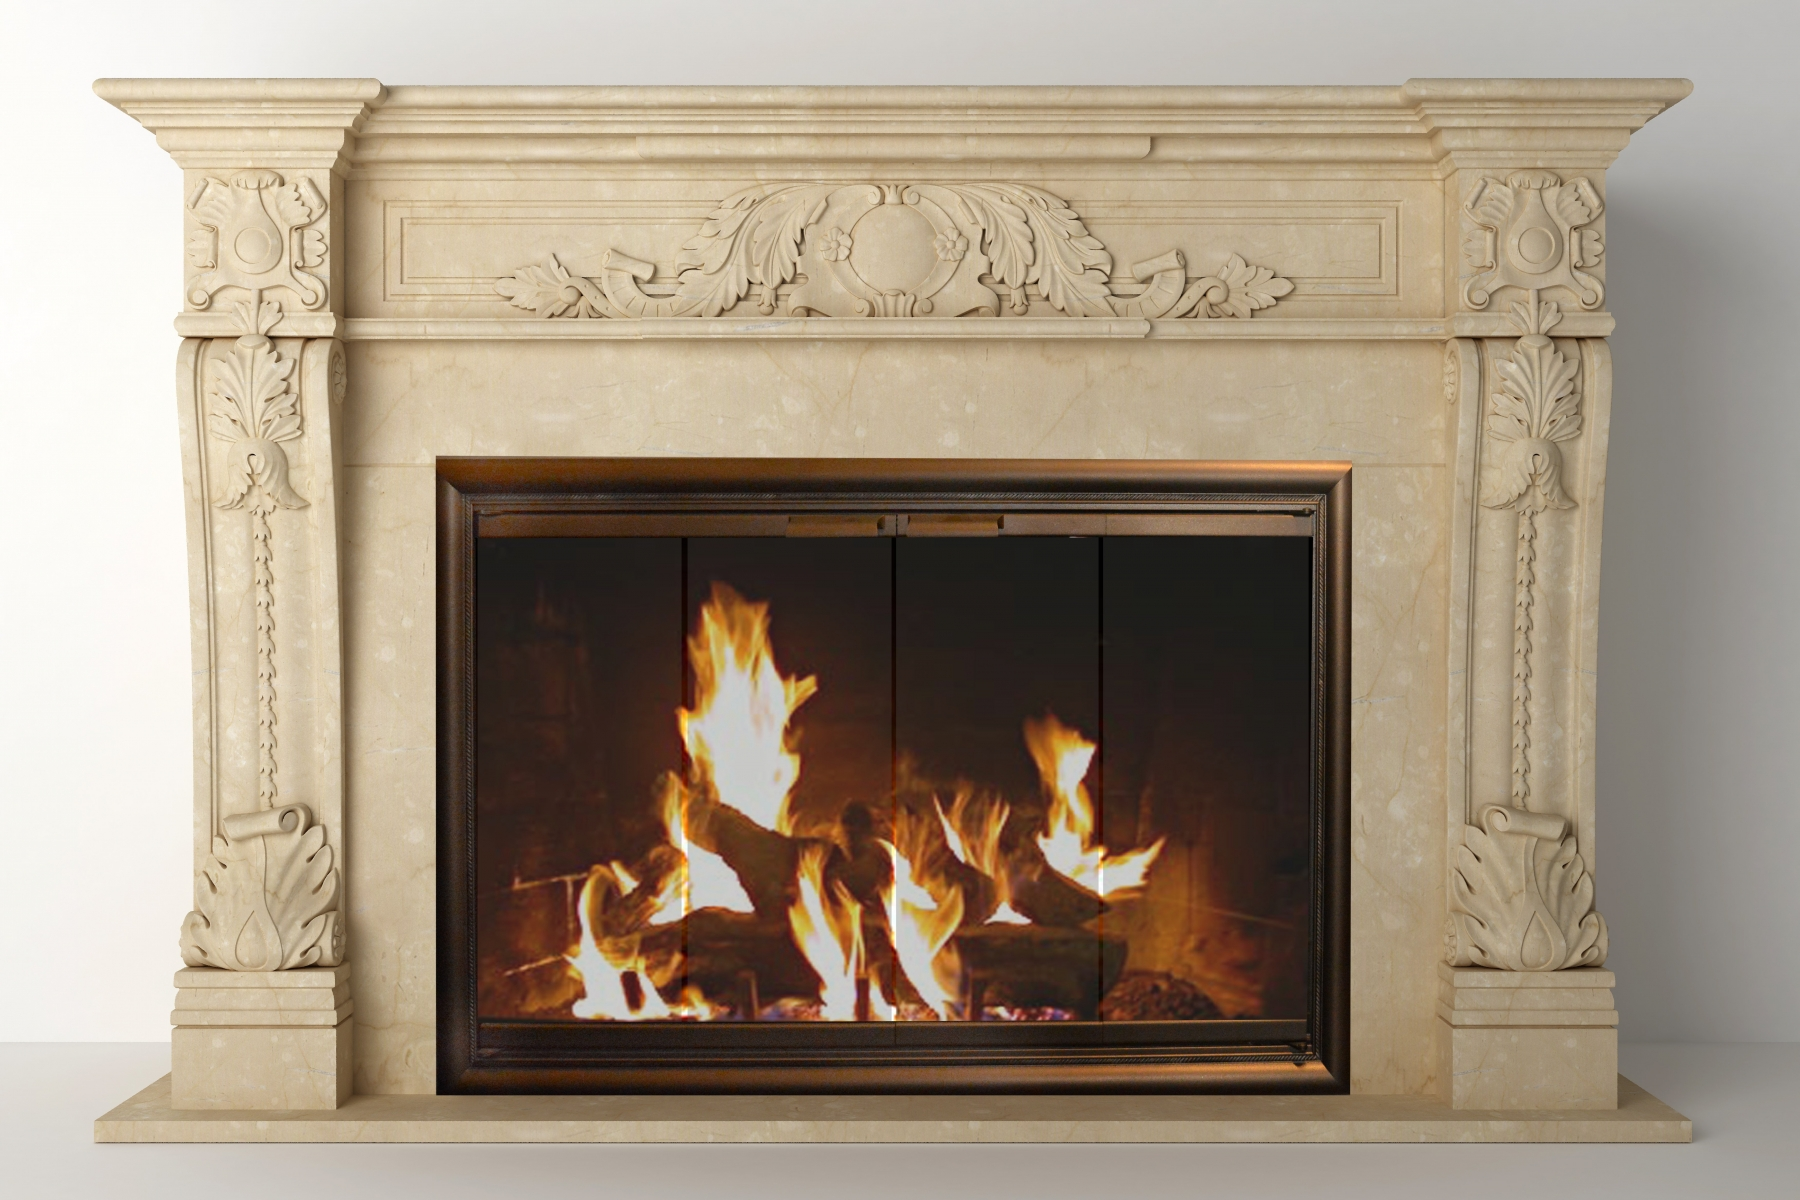 Portland Willamette Room - Crown Door Aged Bronze Finish Cream Colored Mantel